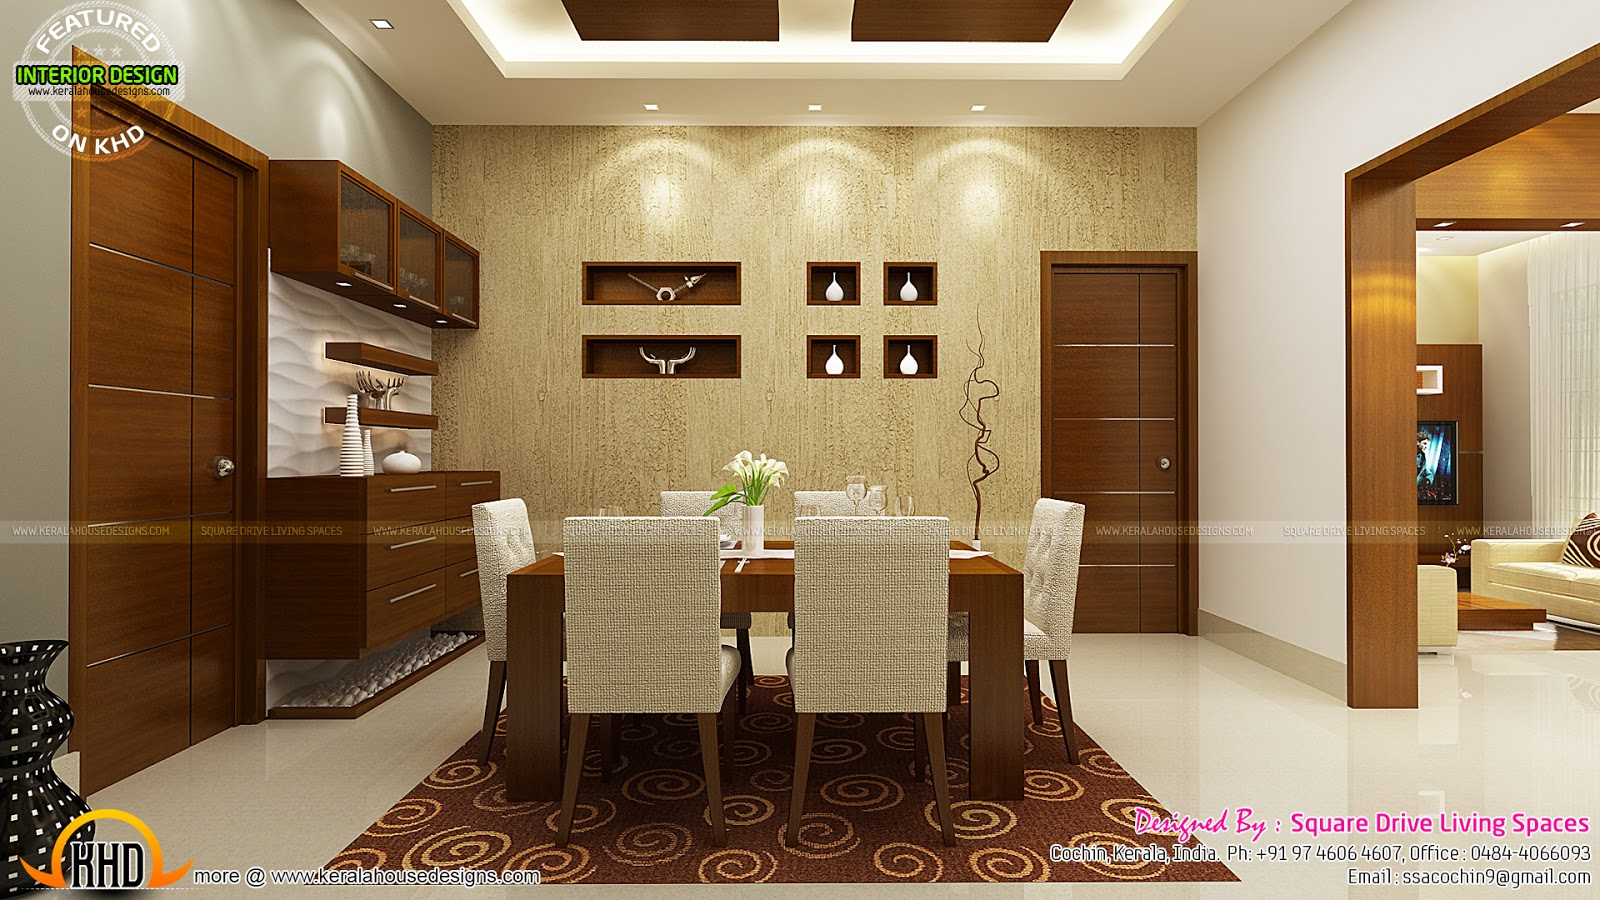 Contemporary kitchen dining and living room kerala home for Small hall interior design photos india